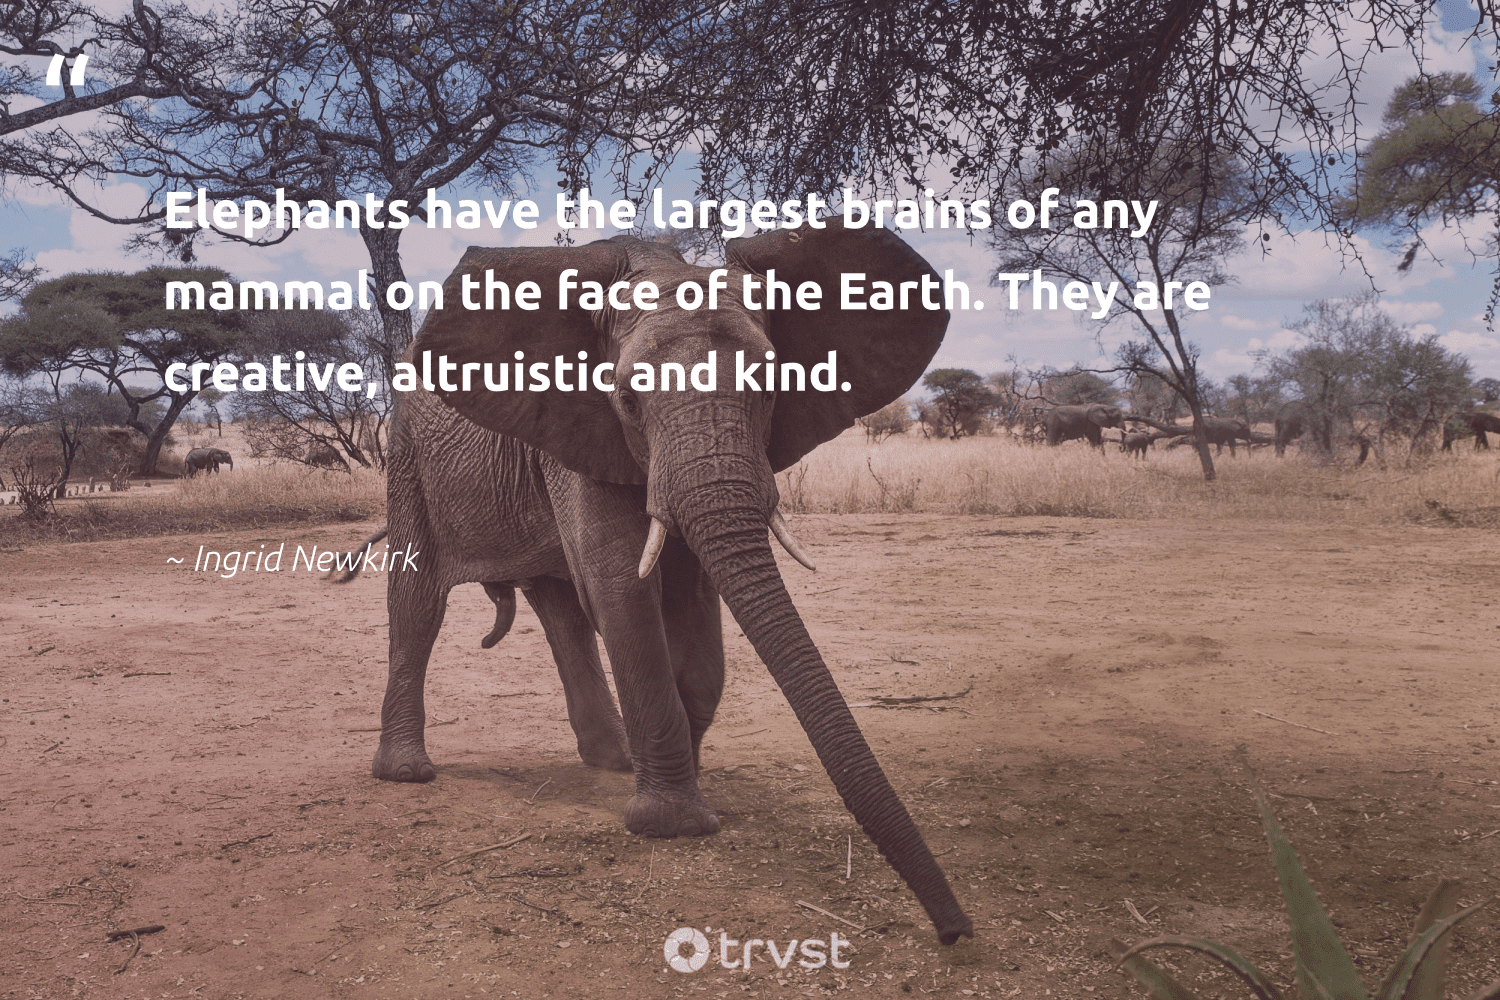 """""""Elephants have the largest brains of any mammal on the face of the Earth. They are creative, altruistic and kind.""""  - Ingrid Newkirk #trvst #quotes #earth #mammal #creative #elephants #mothernature #elephantlover #naturelovers #changetheworld #nature #elephant"""